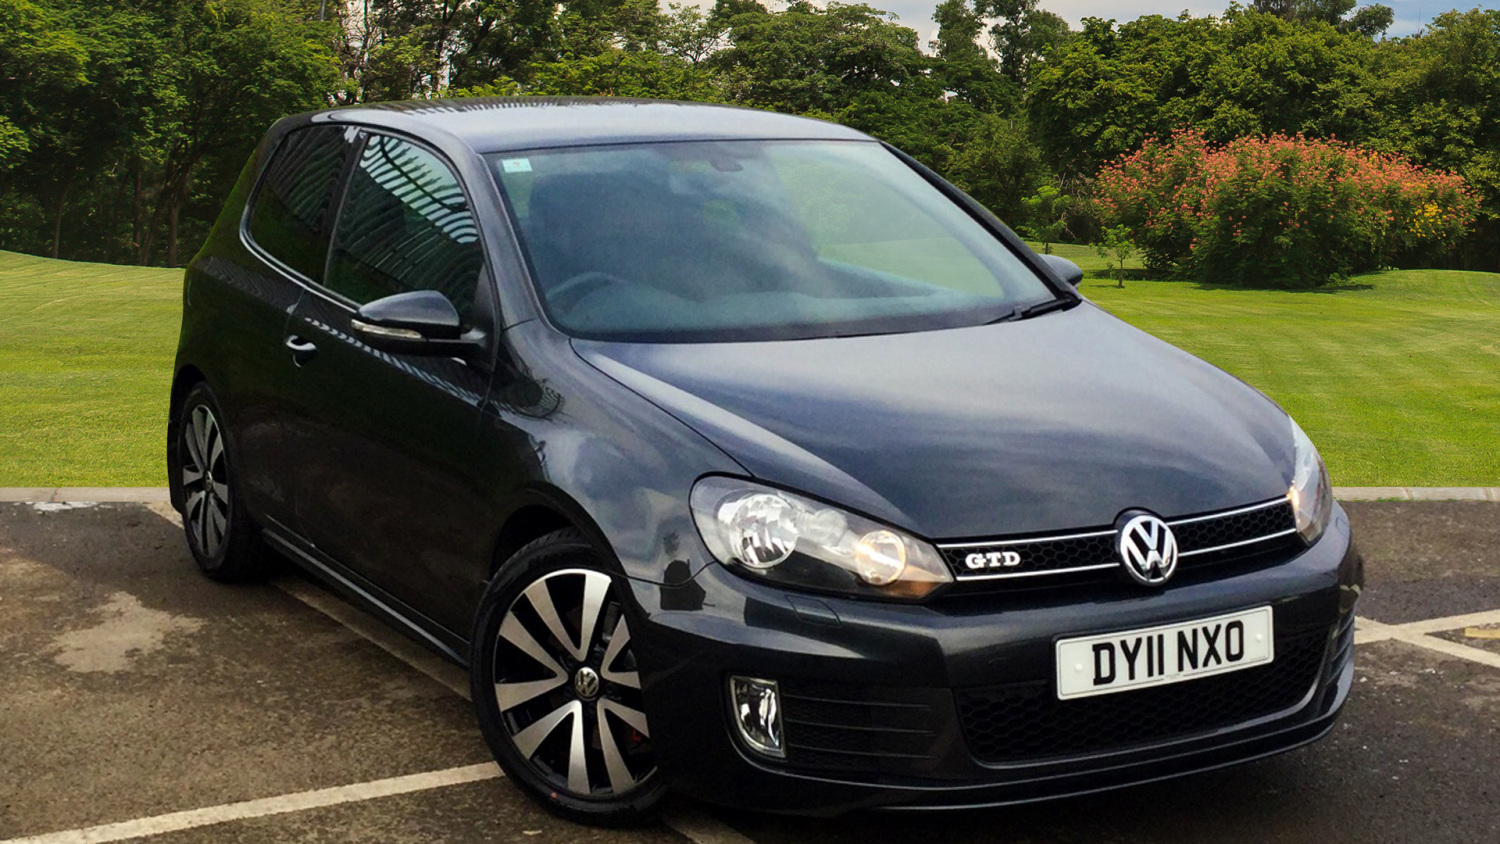 used volkswagen golf 2 0 tdi 170 gtd 3dr diesel hatchback for sale bristol street motors. Black Bedroom Furniture Sets. Home Design Ideas